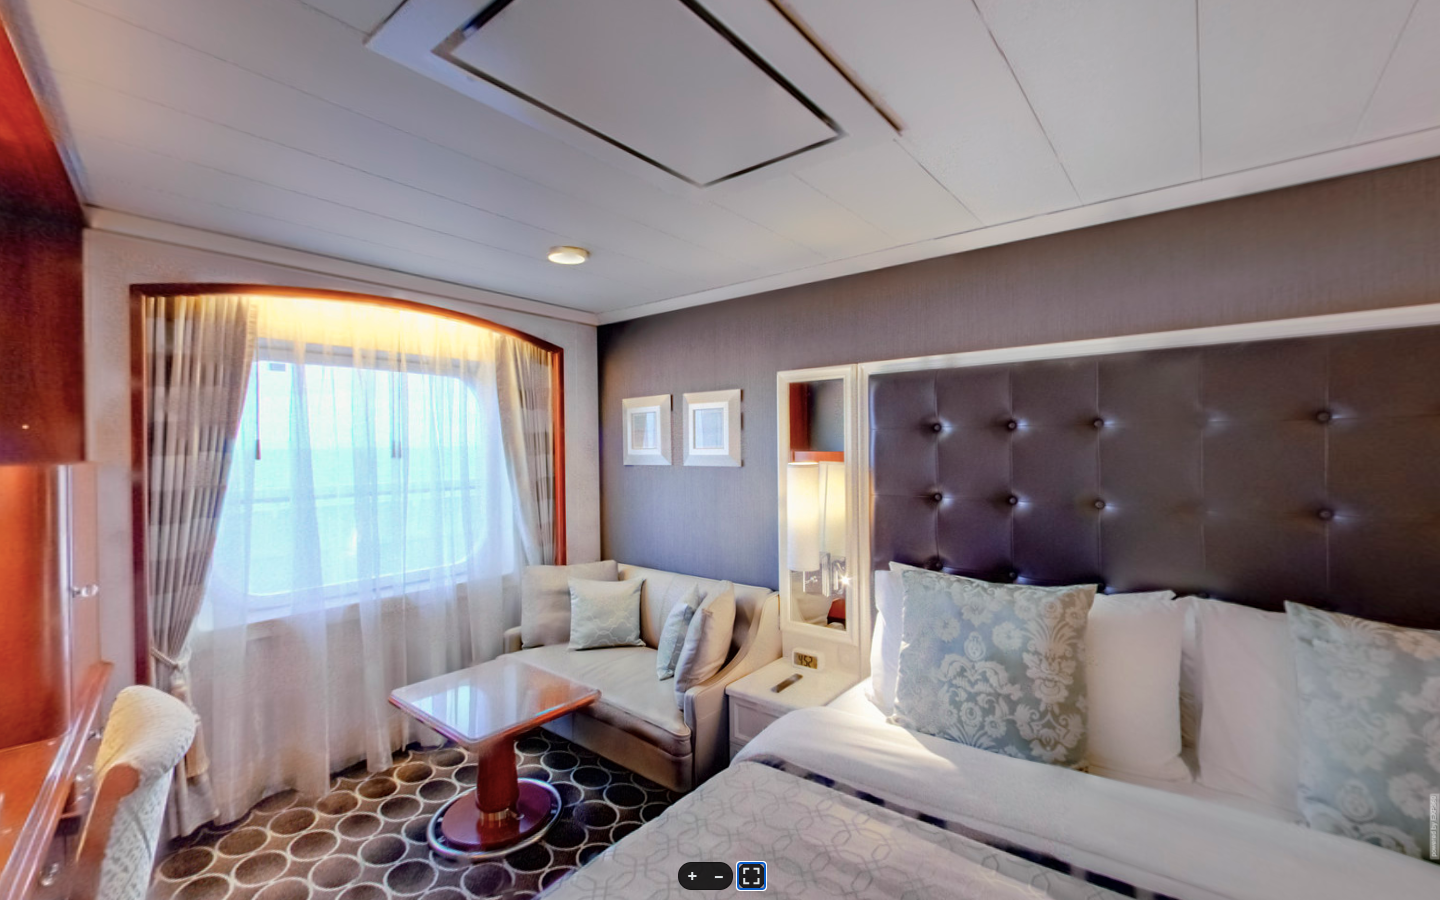 Deluxe Stateroom with a Large Picture Window (C1, C2, C3)